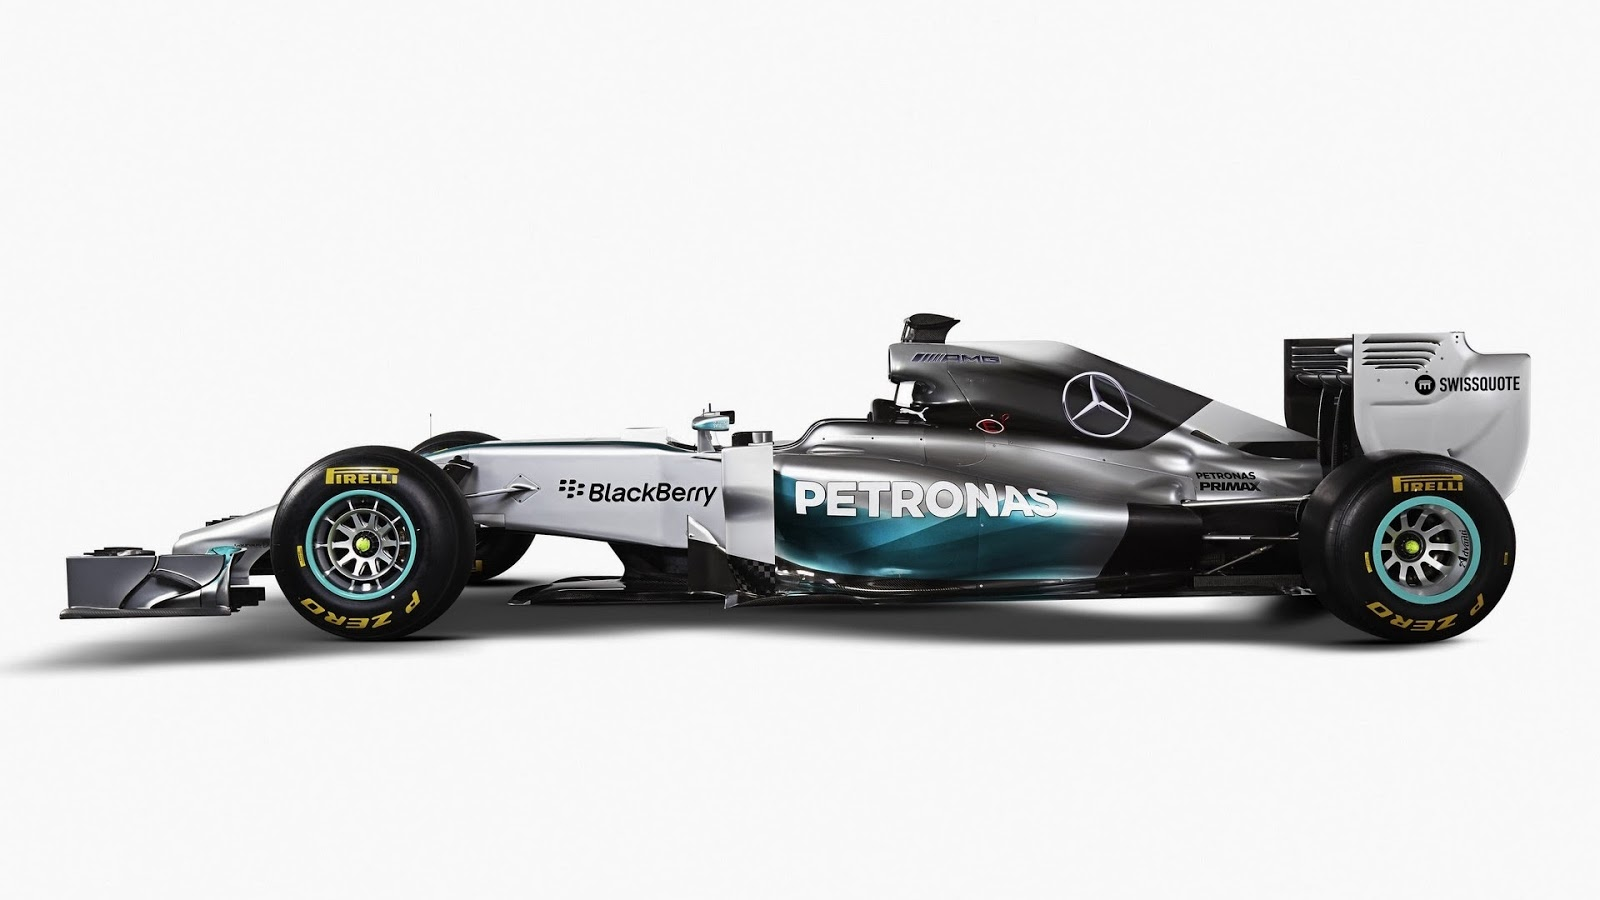 mercedes amg petronas w05 2014 f1 wallpaper kfzoom. Black Bedroom Furniture Sets. Home Design Ideas